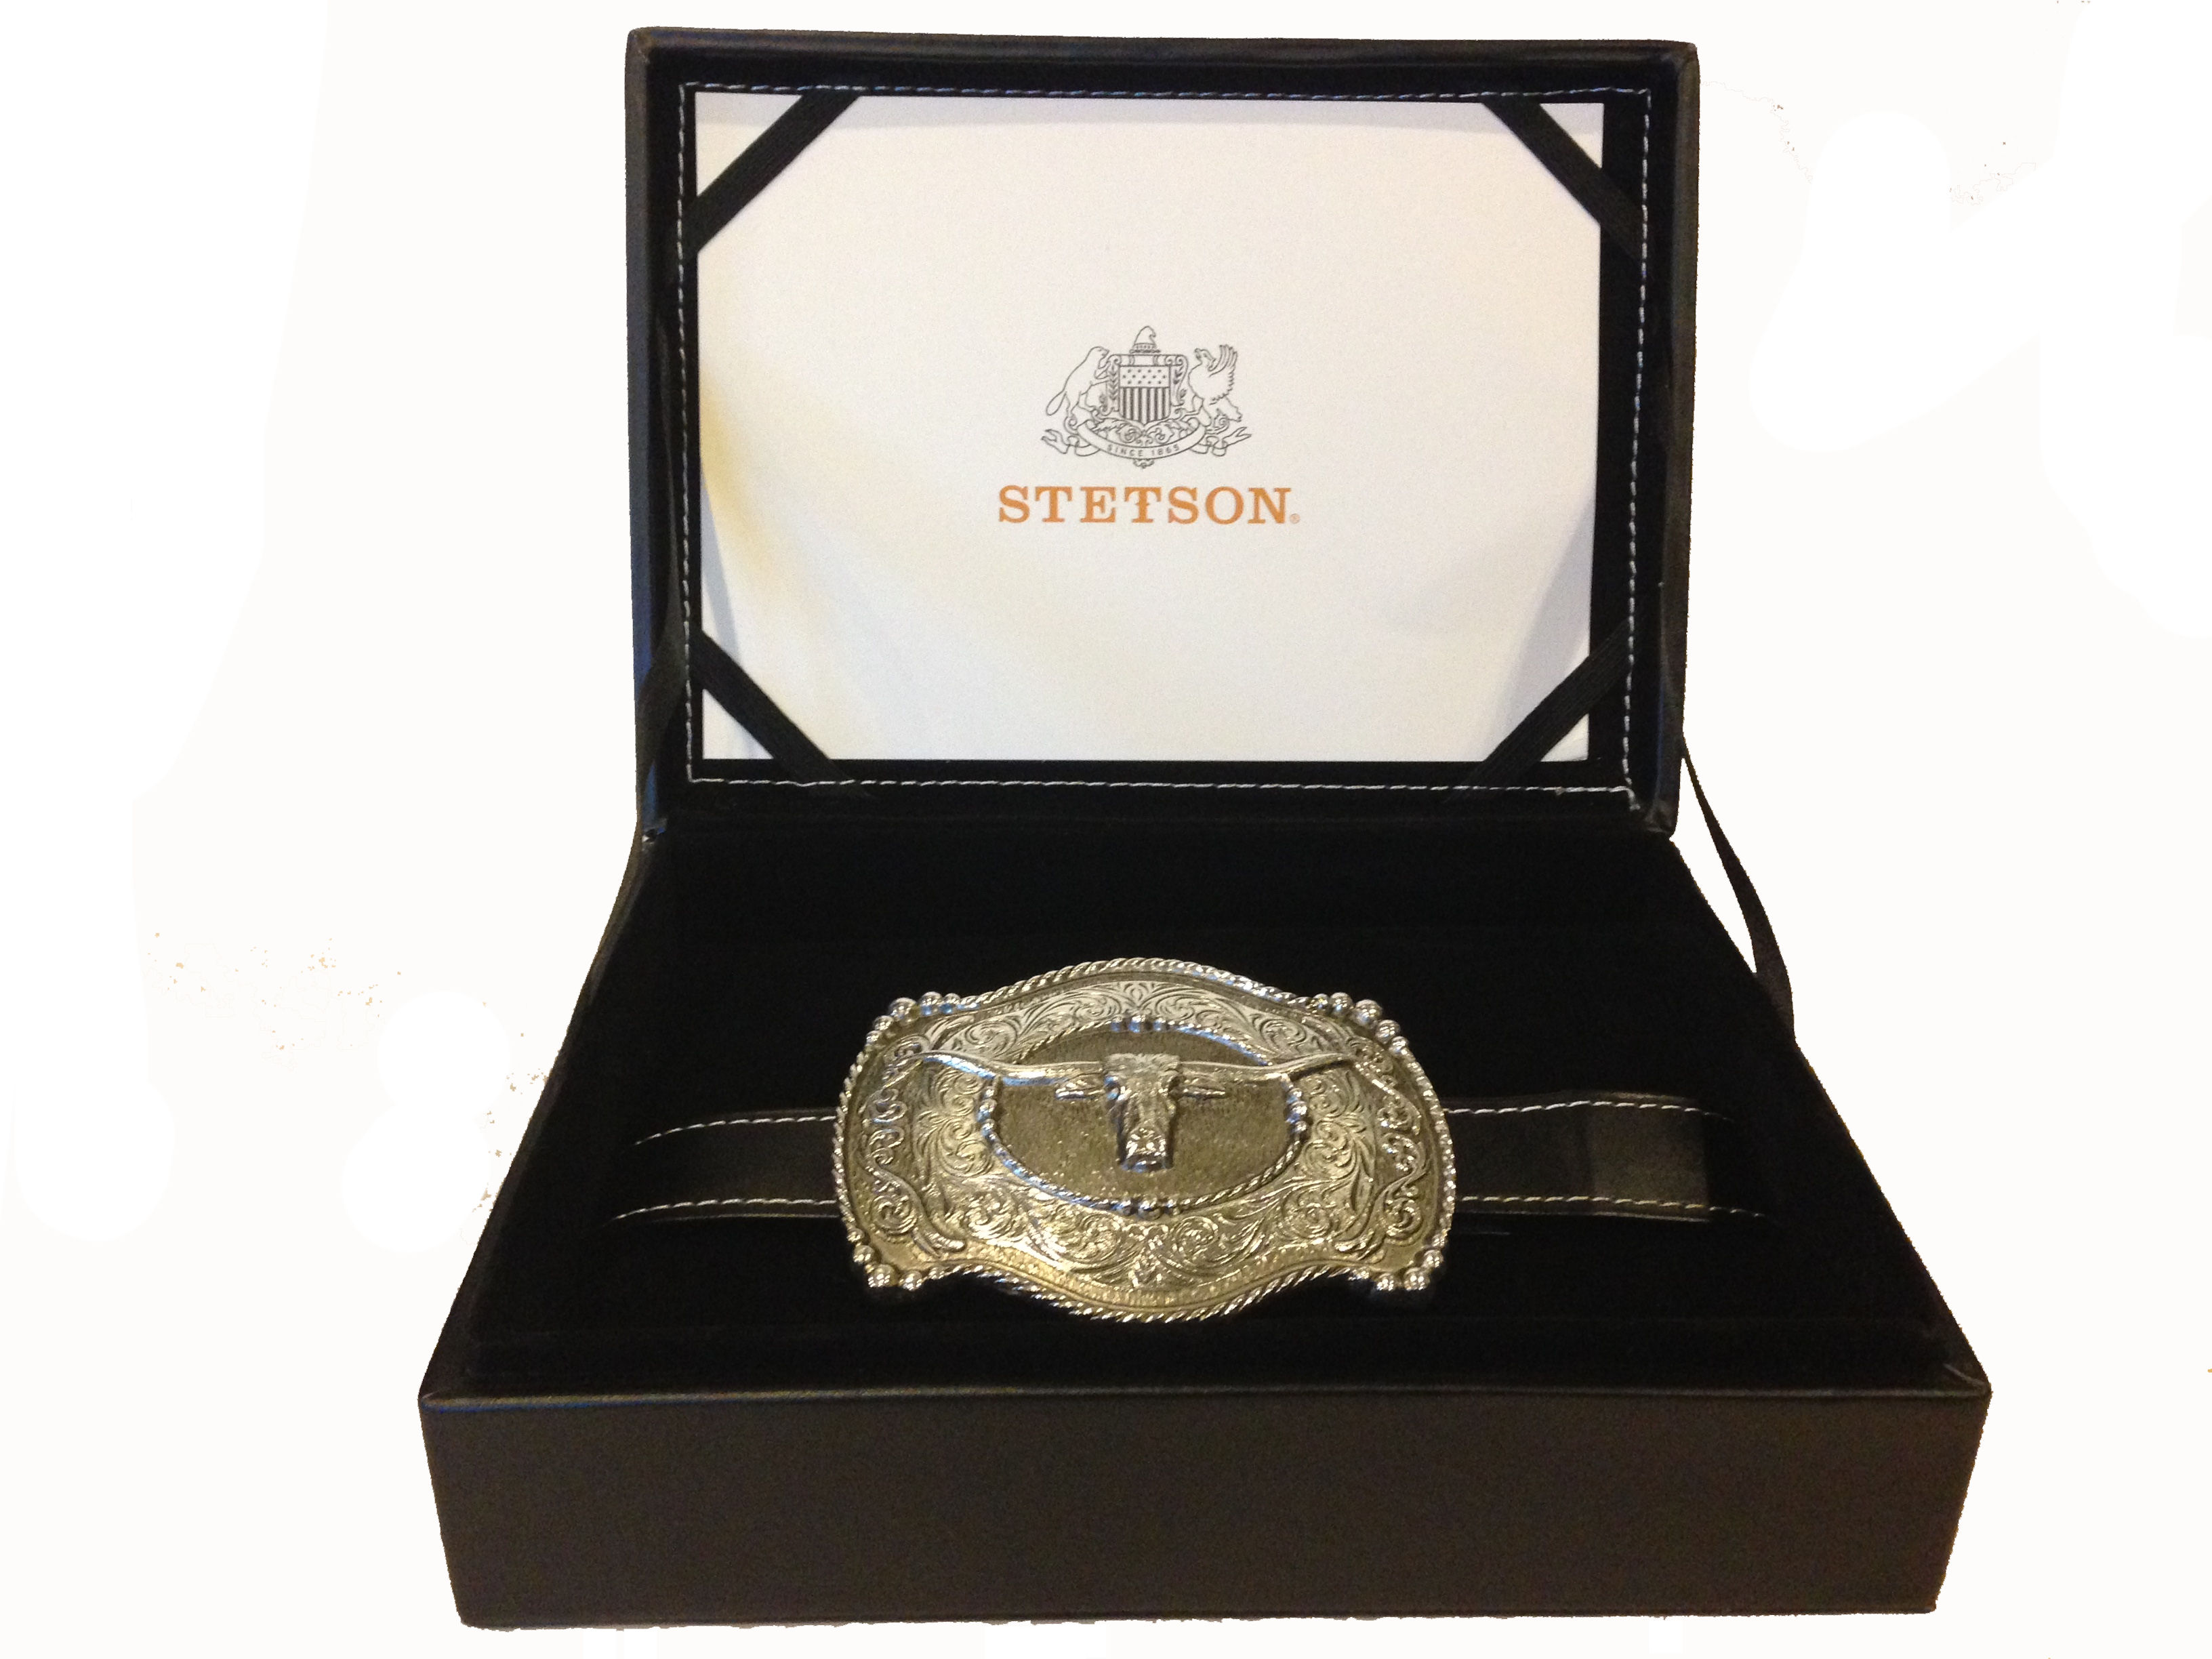 Stetson Silver Plated Relentless Leather Boxed